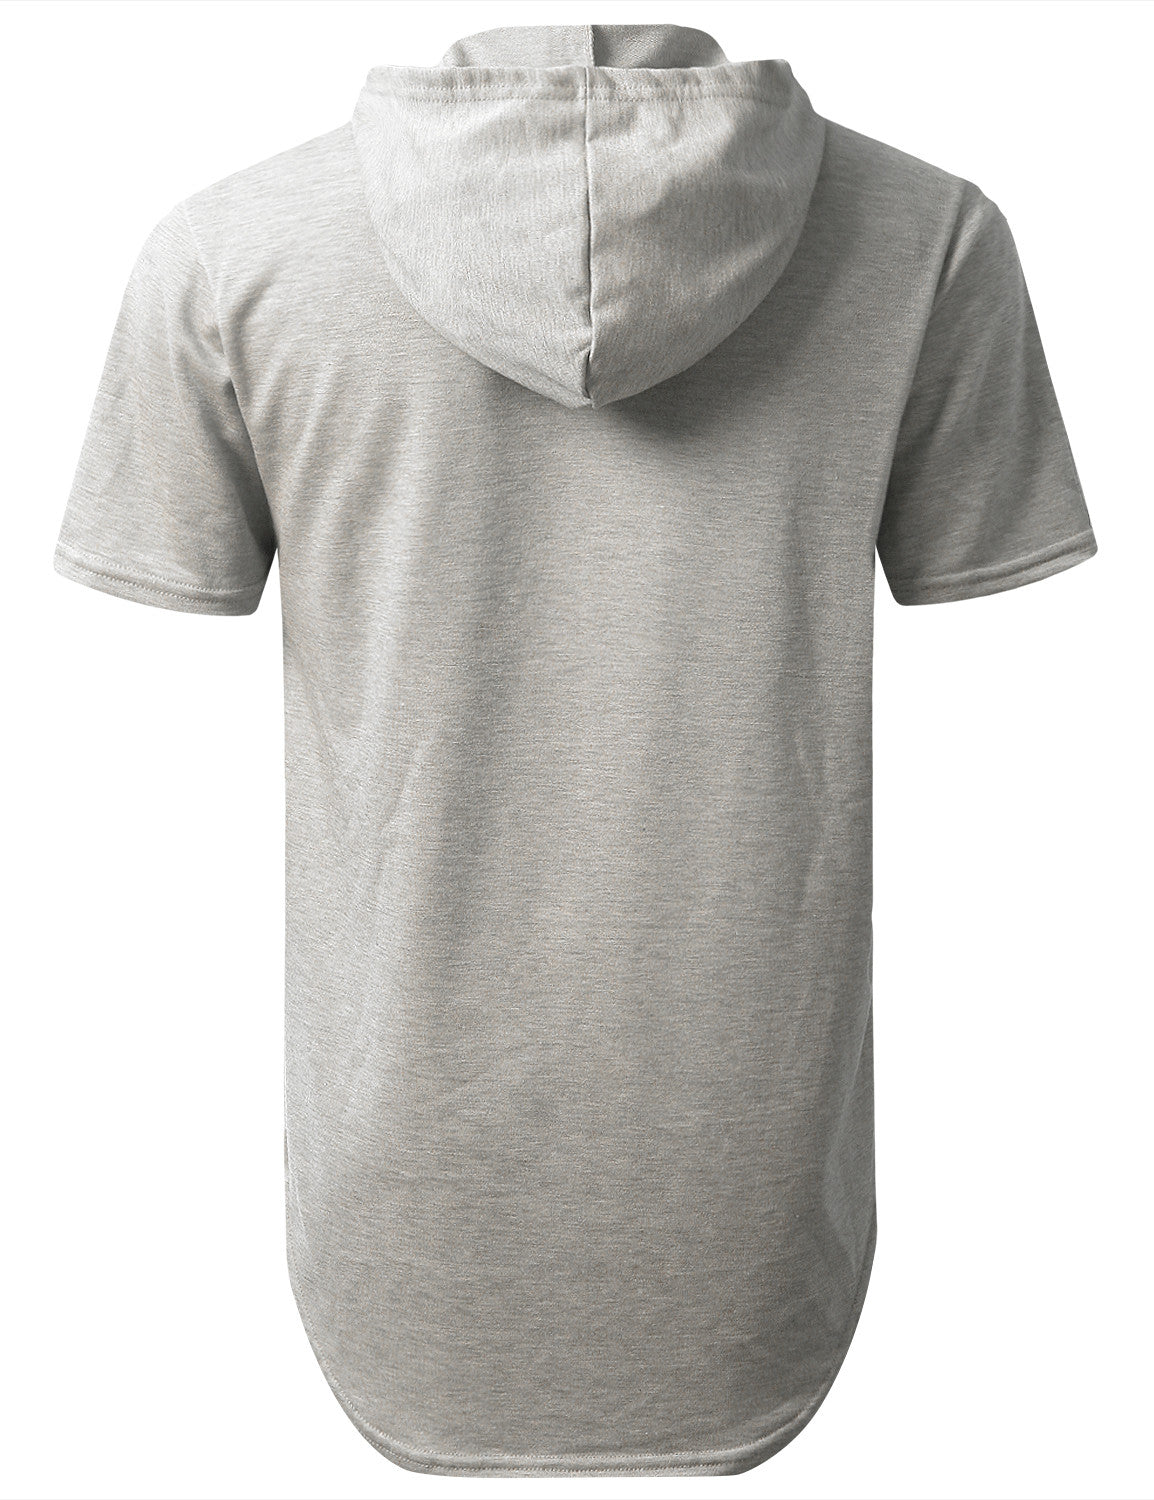 GRAY Heavy French Terry Hoodie T-shirt - URBANCREWS